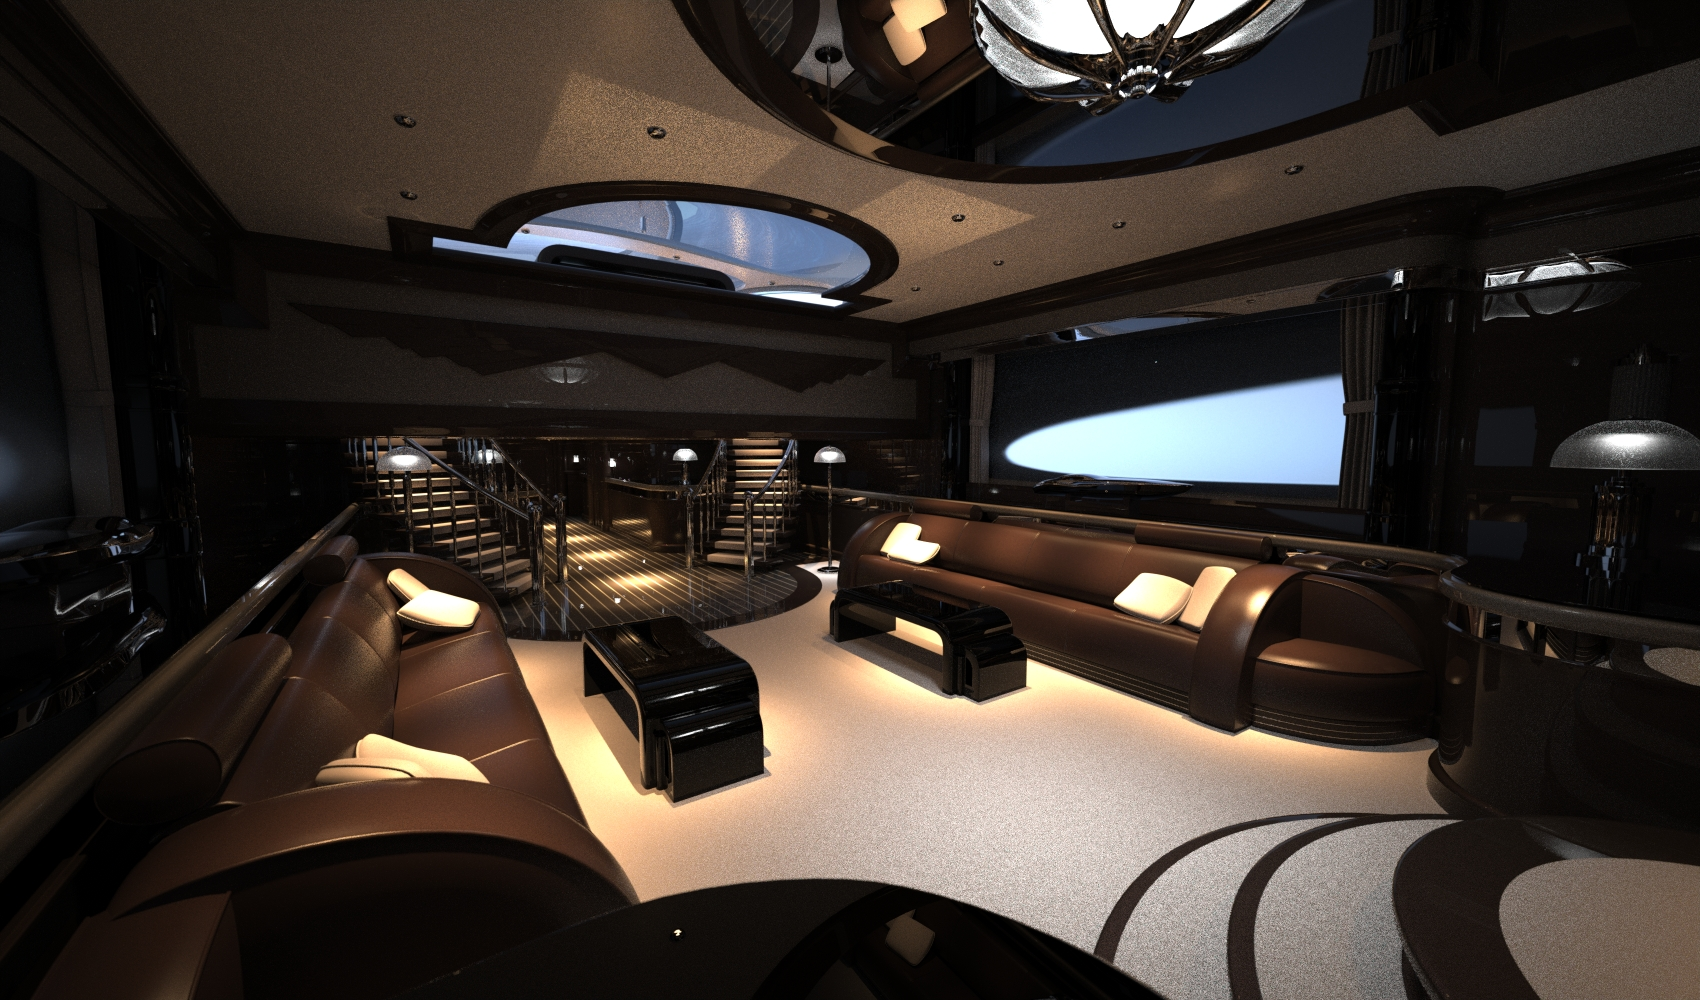 Inside Luxury Yachts Got A Spare 29 Million Dollars Desktop